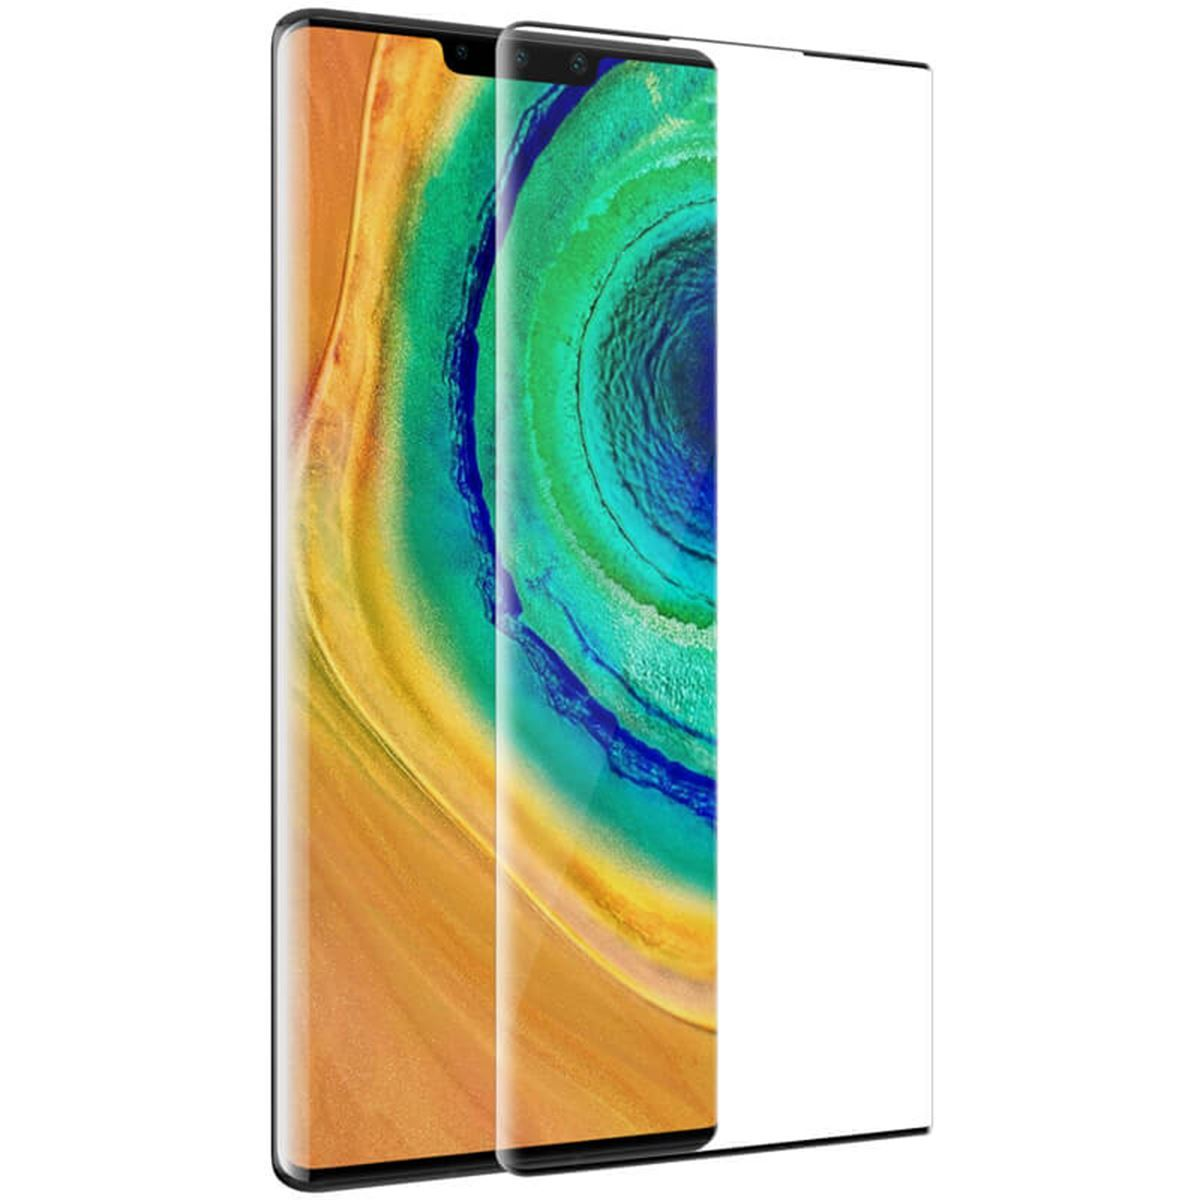 Huawei Mate 20 Pro Tempered Glass Screen Protector - Clear